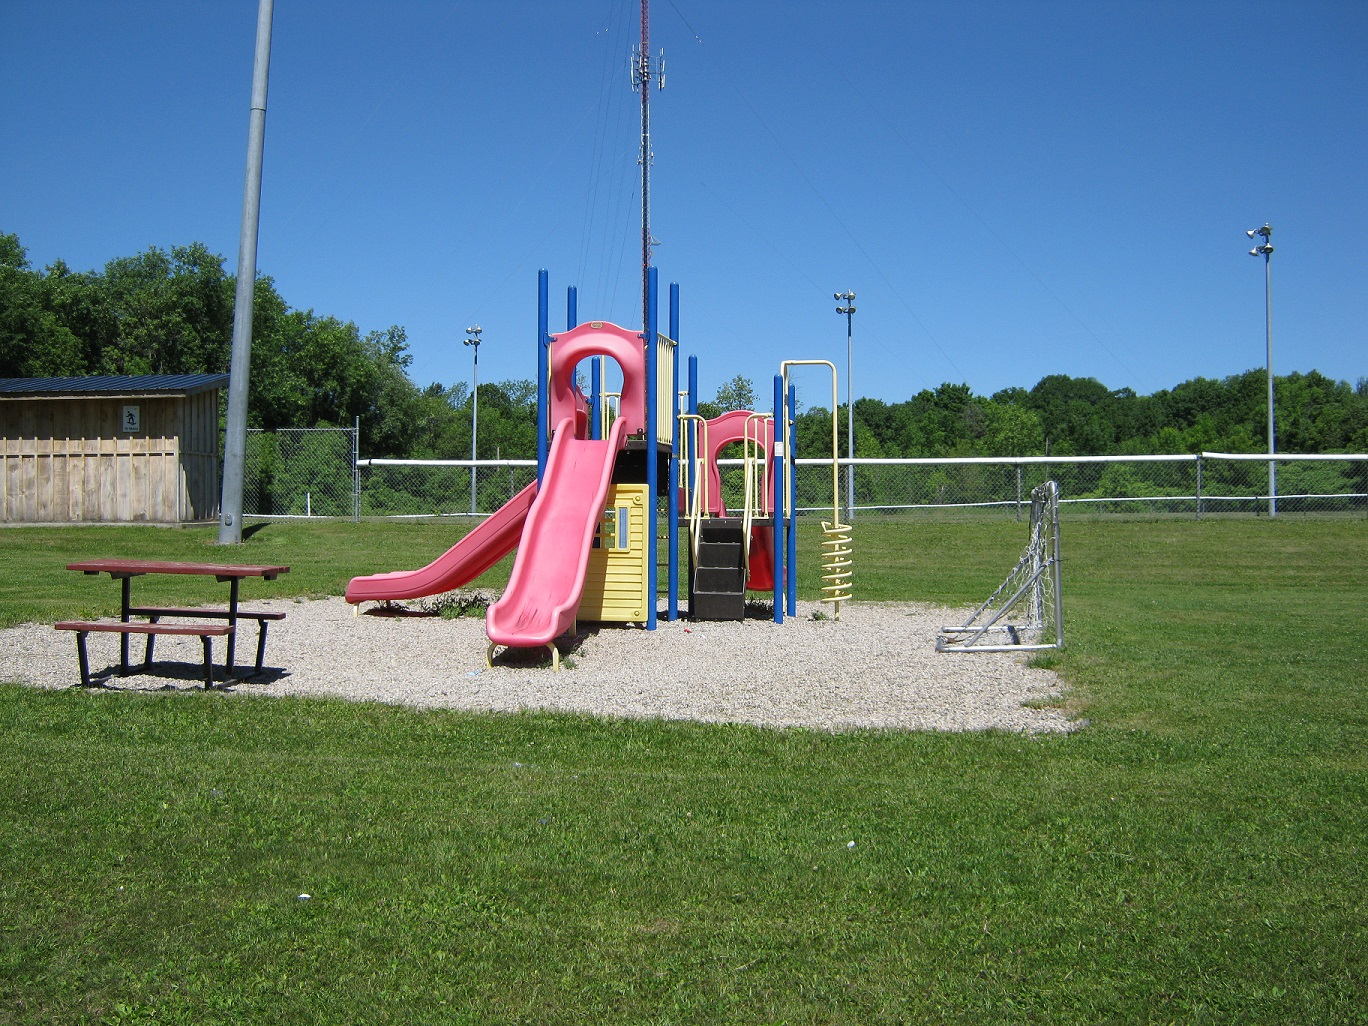 Children's play structure with picnic table